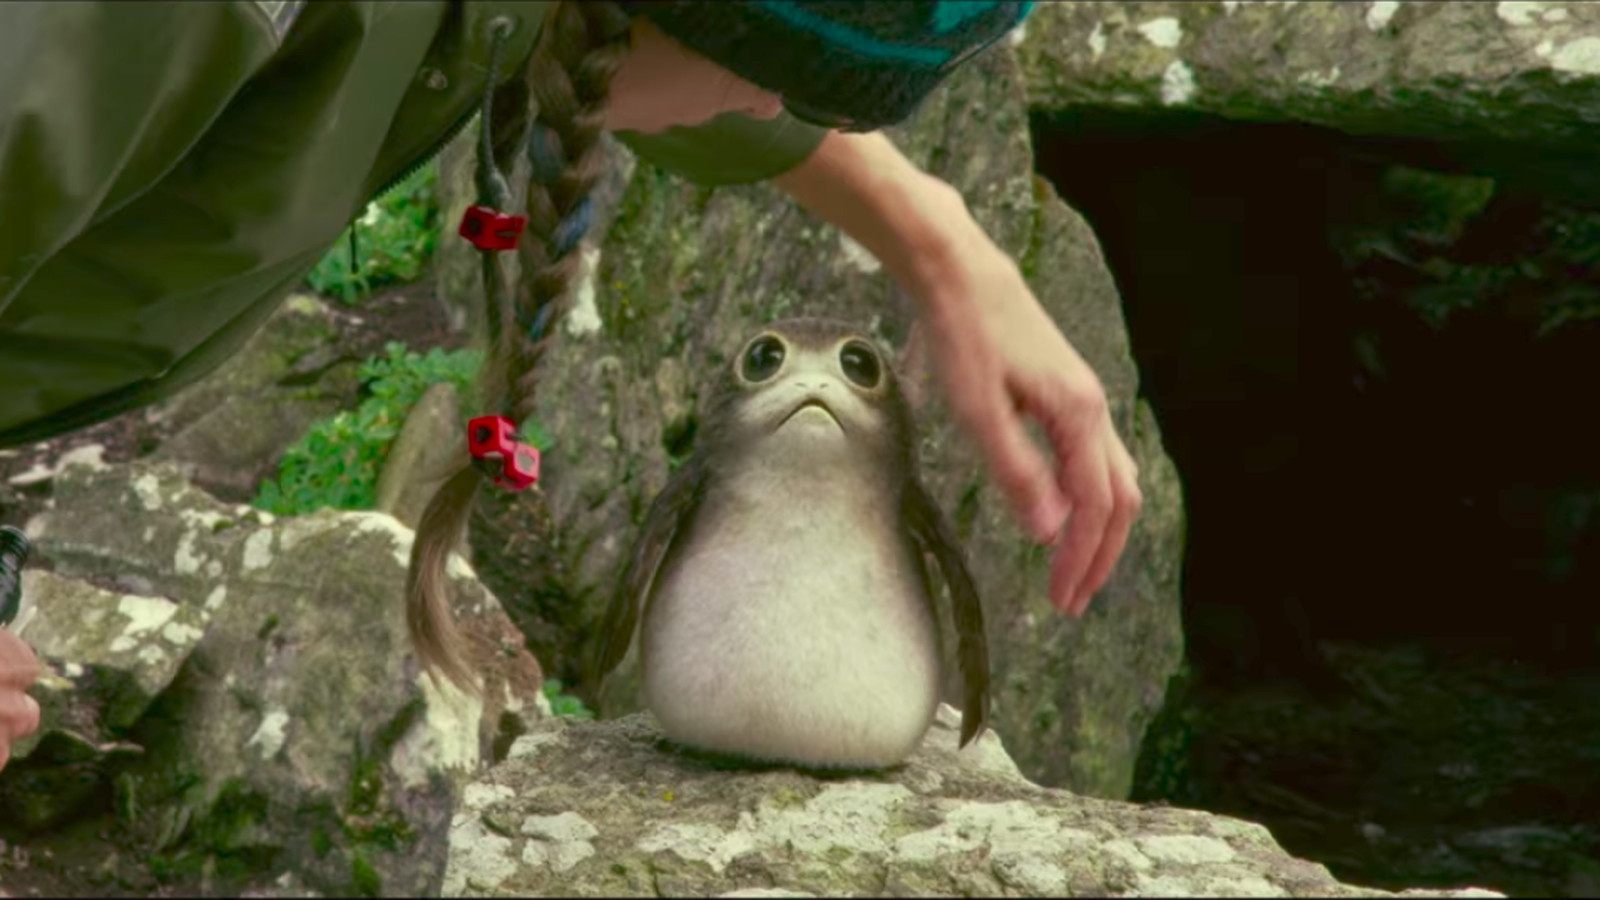 Star Wars: The Last Jedi's puffin-like critters may be more than meets the eye